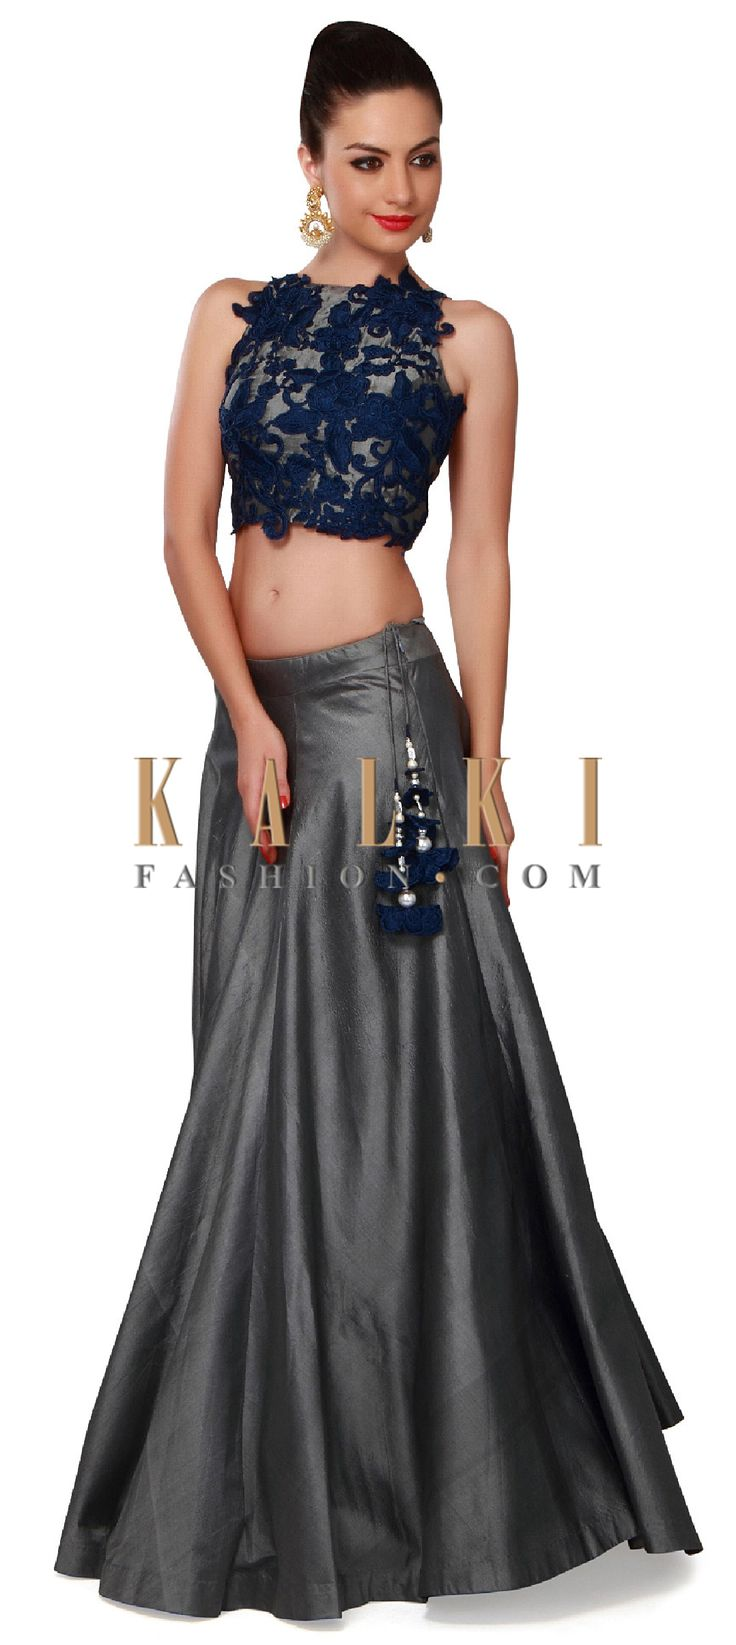 Buy Online from the link below. We ship worldwide (Free Shipping over US$100). Product SKU - 302826. Product Price - $539.00. Product link - http://www.kalkifashion.com/grey-lehenga-adorn-in-resham-applique-embroidery-only-on-kalki.html